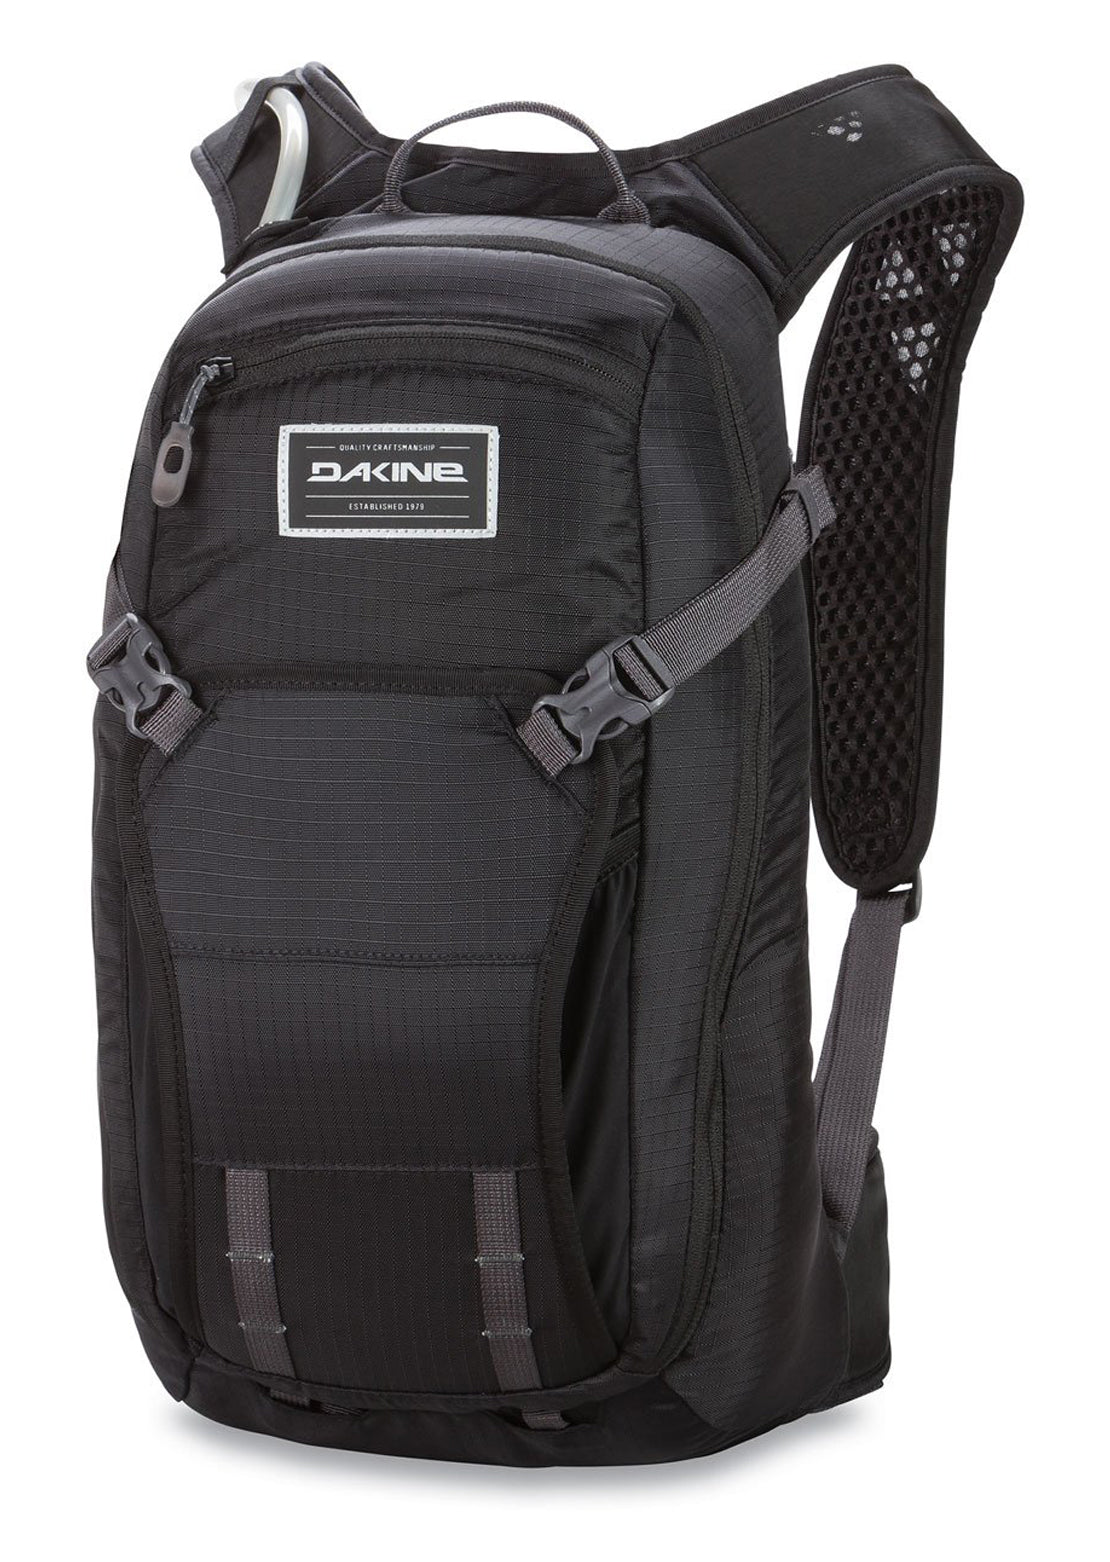 Dakine Drafter 10L Hydration Bike Backpack Black